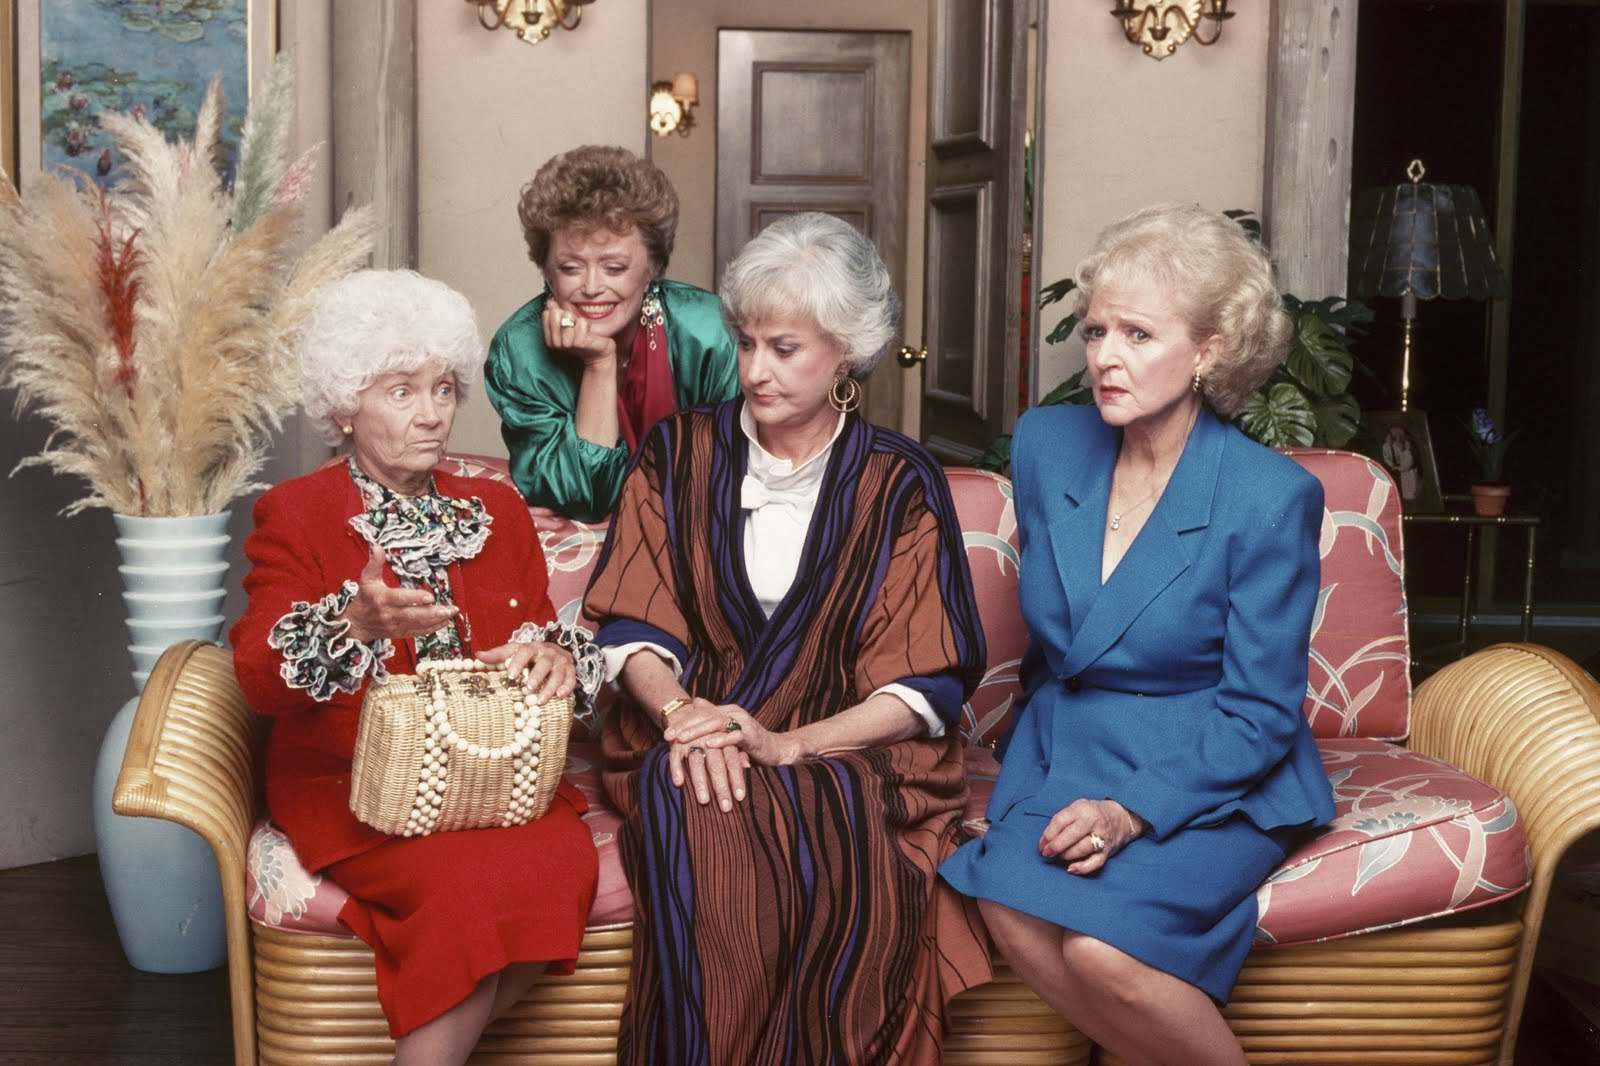 Golden Girls VS Designing Women Images The HD Wallpaper And Background Photos